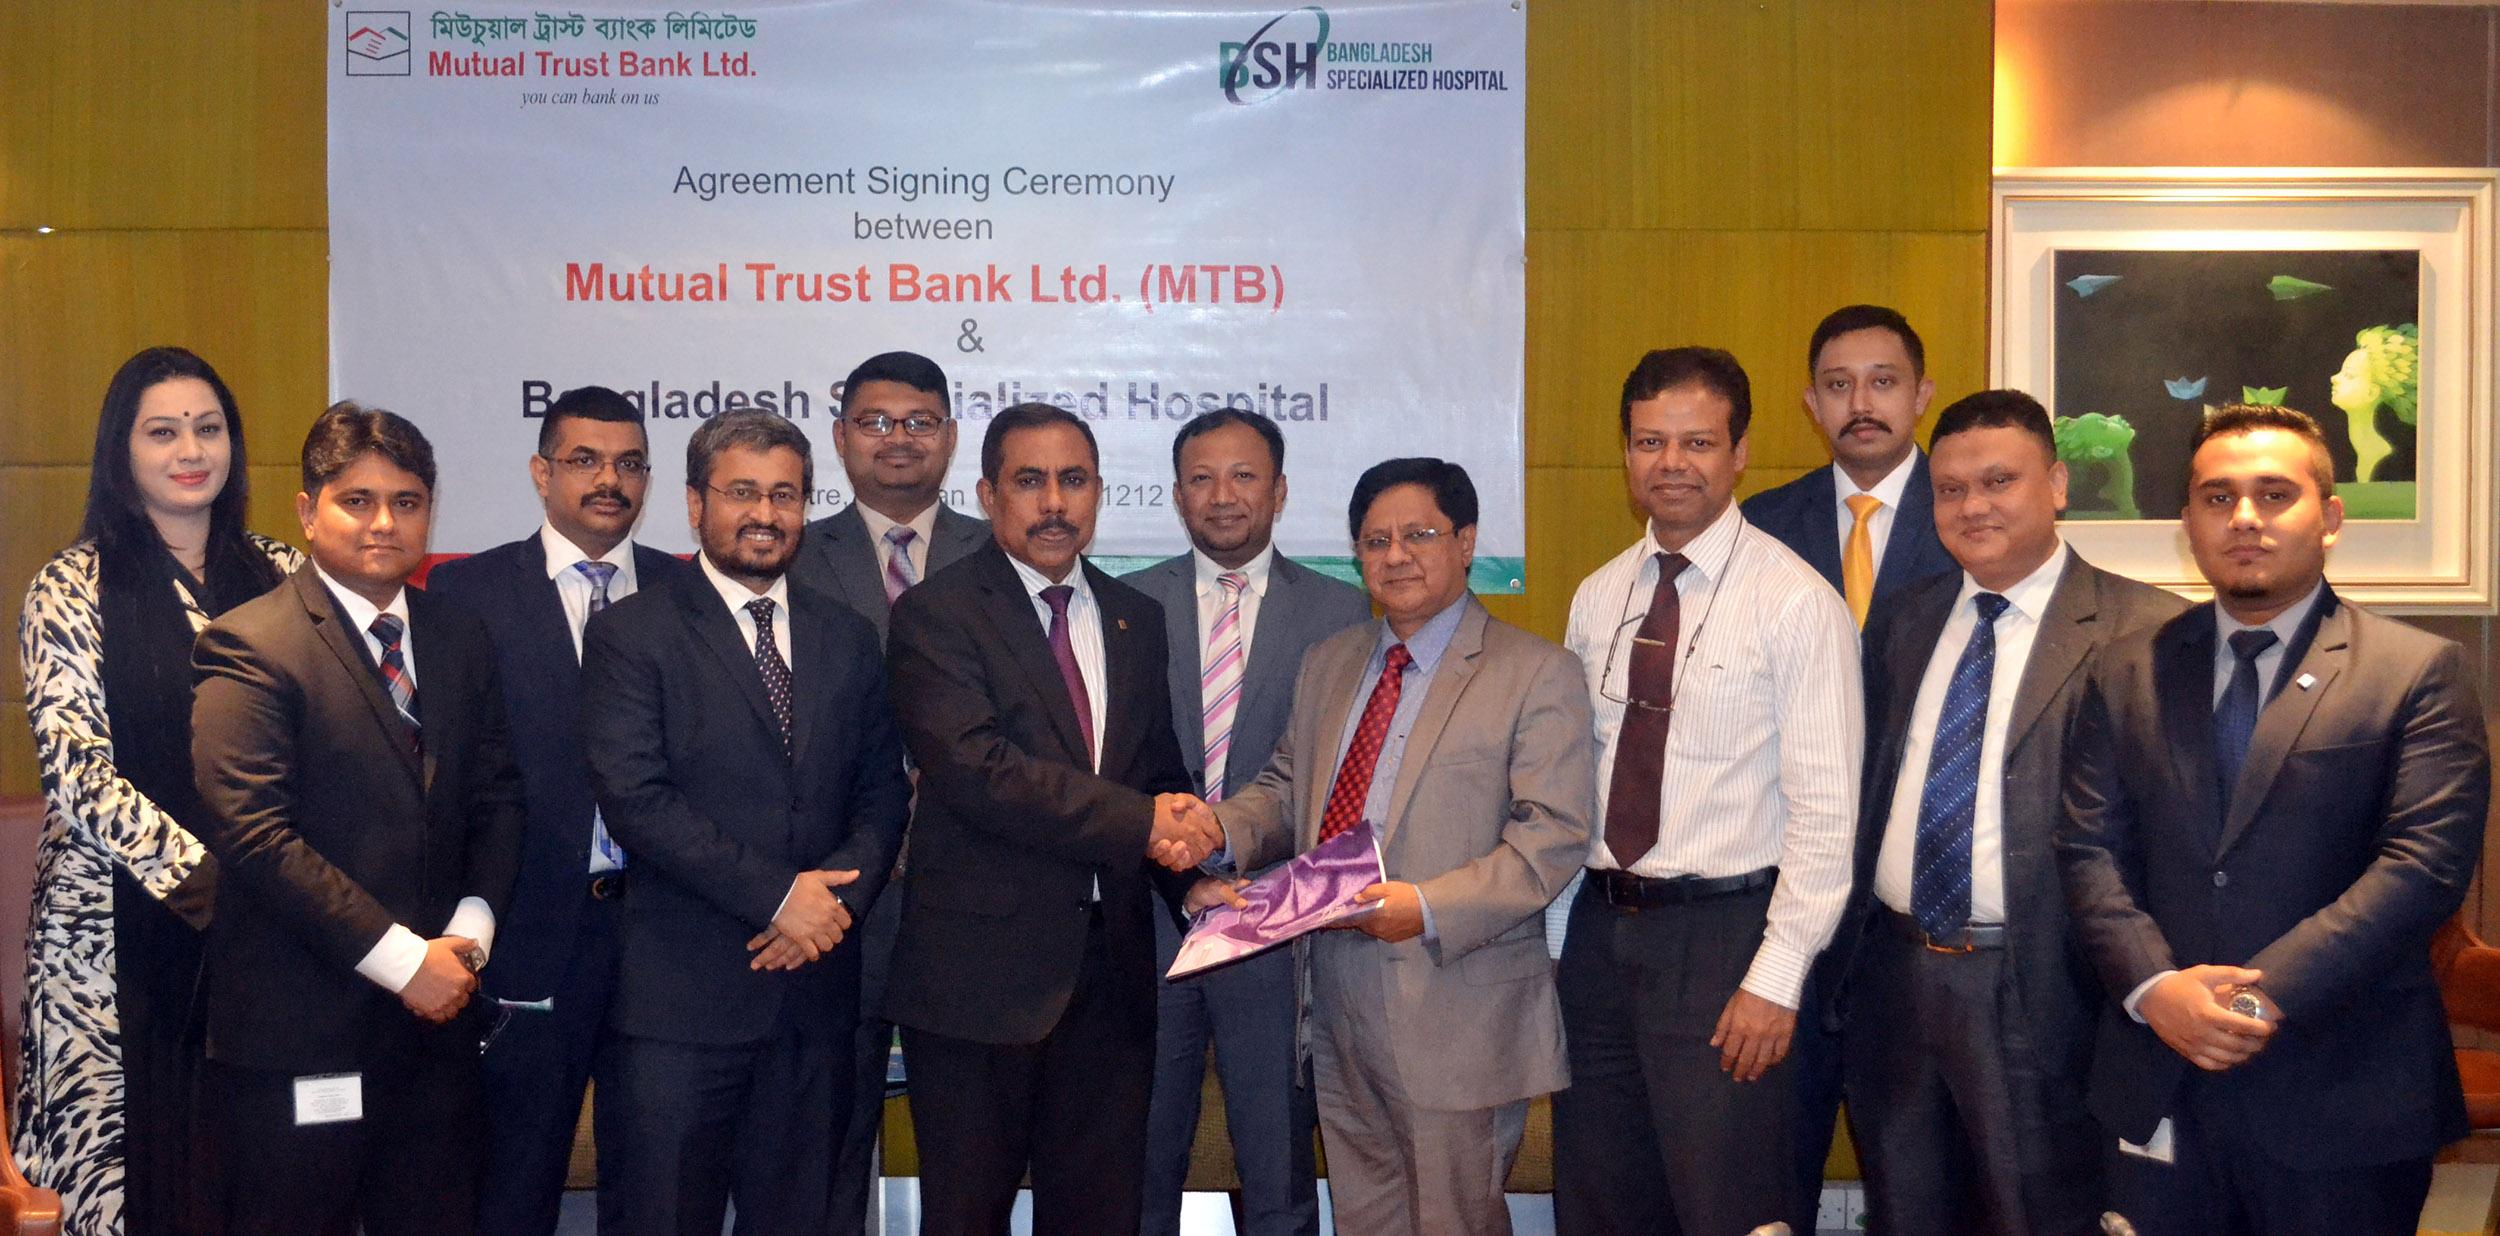 2016-12-03 MTB signs agreement with Bangladesh Specialized Hospital